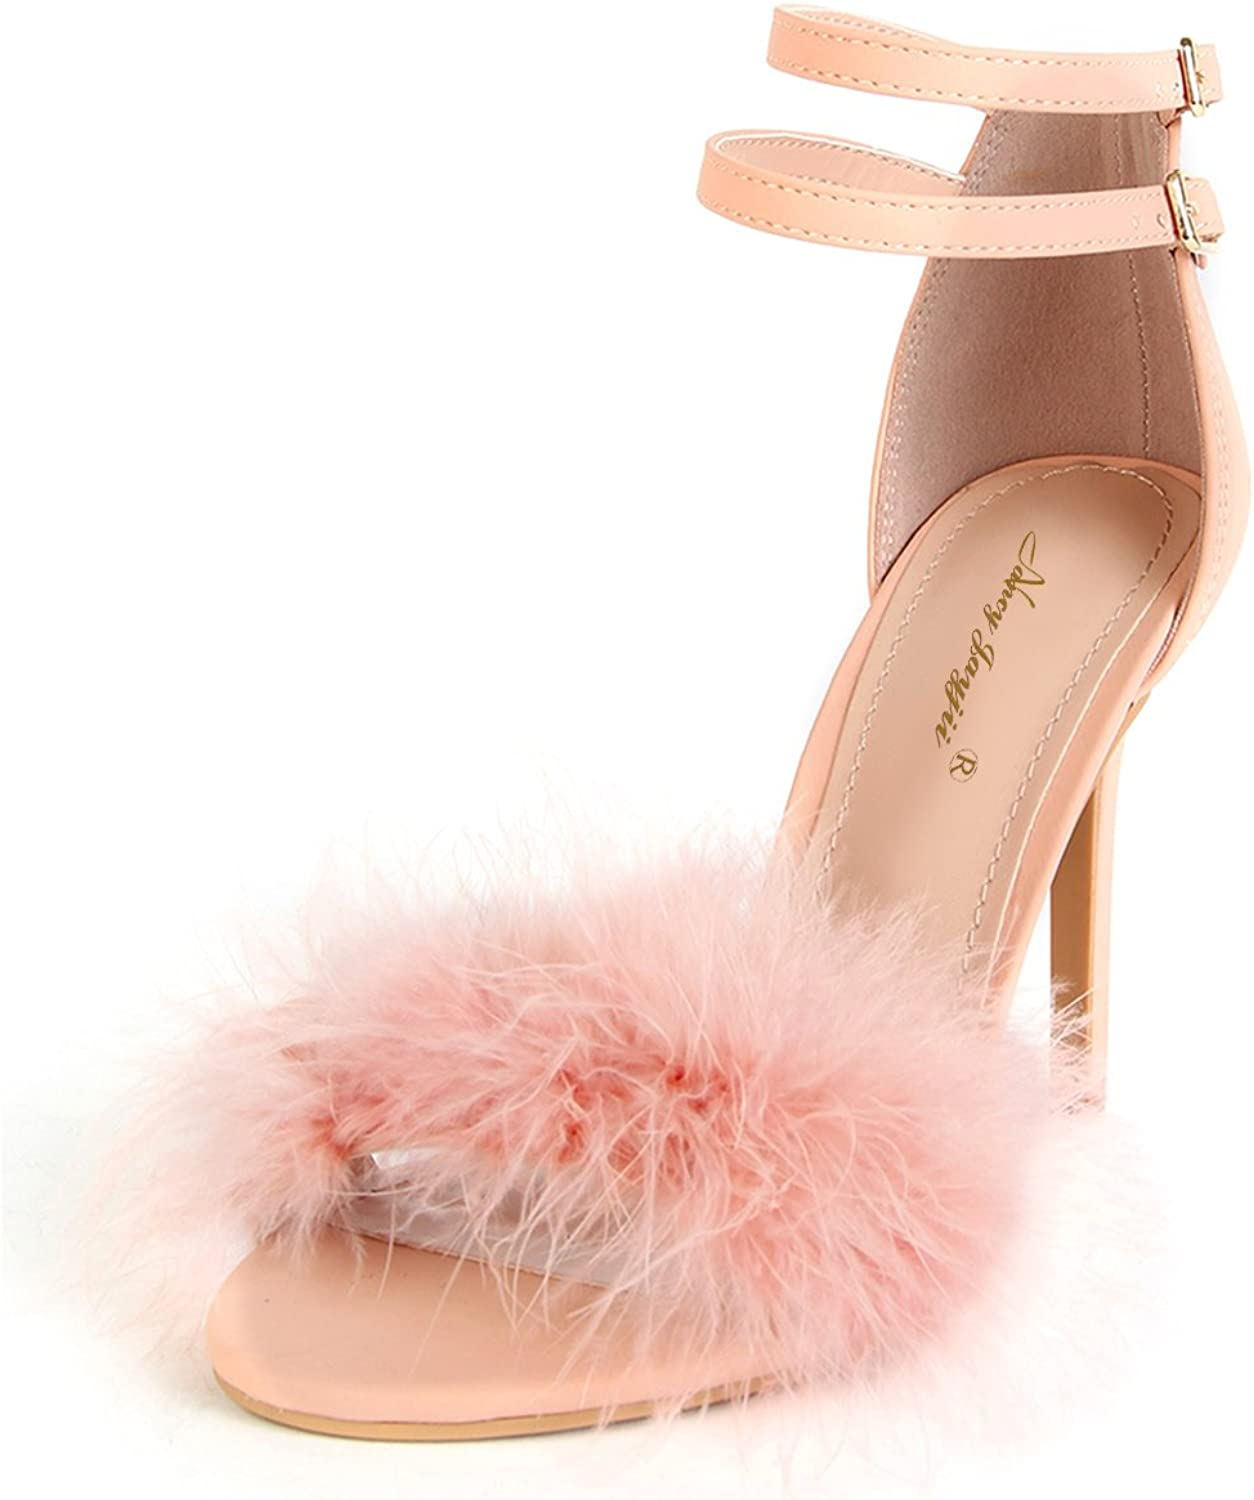 NJ Women Charming High Heels Sandals Open Toe Stiletto Pumps Fluffy Faux Fur Bridal shoes